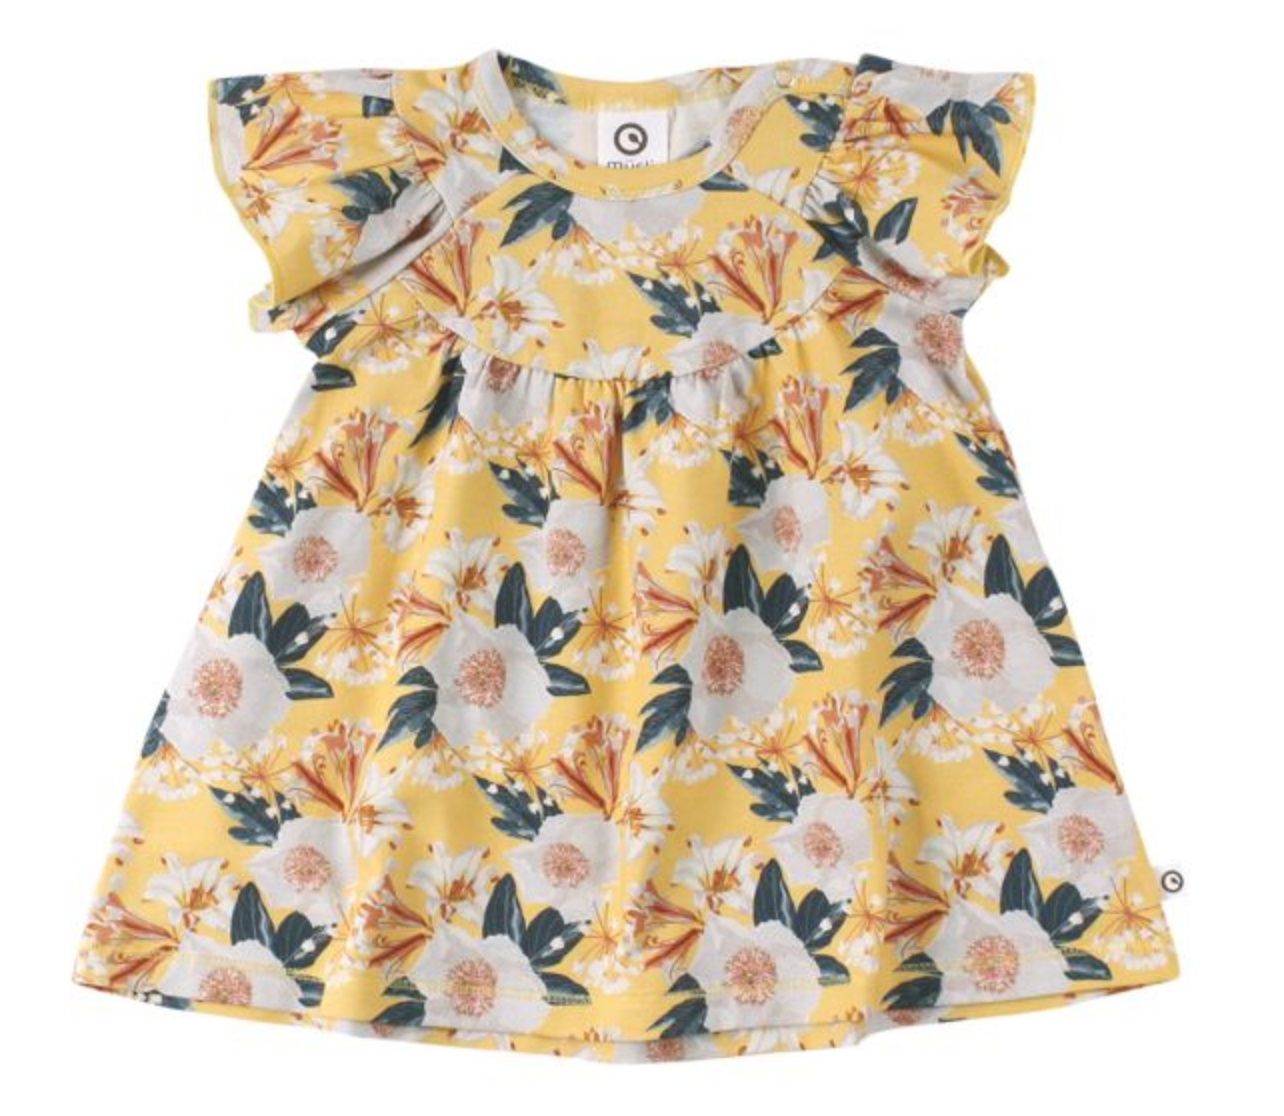 Müsli Organic Cotton Bloom Gather Dress in Sun Yellow